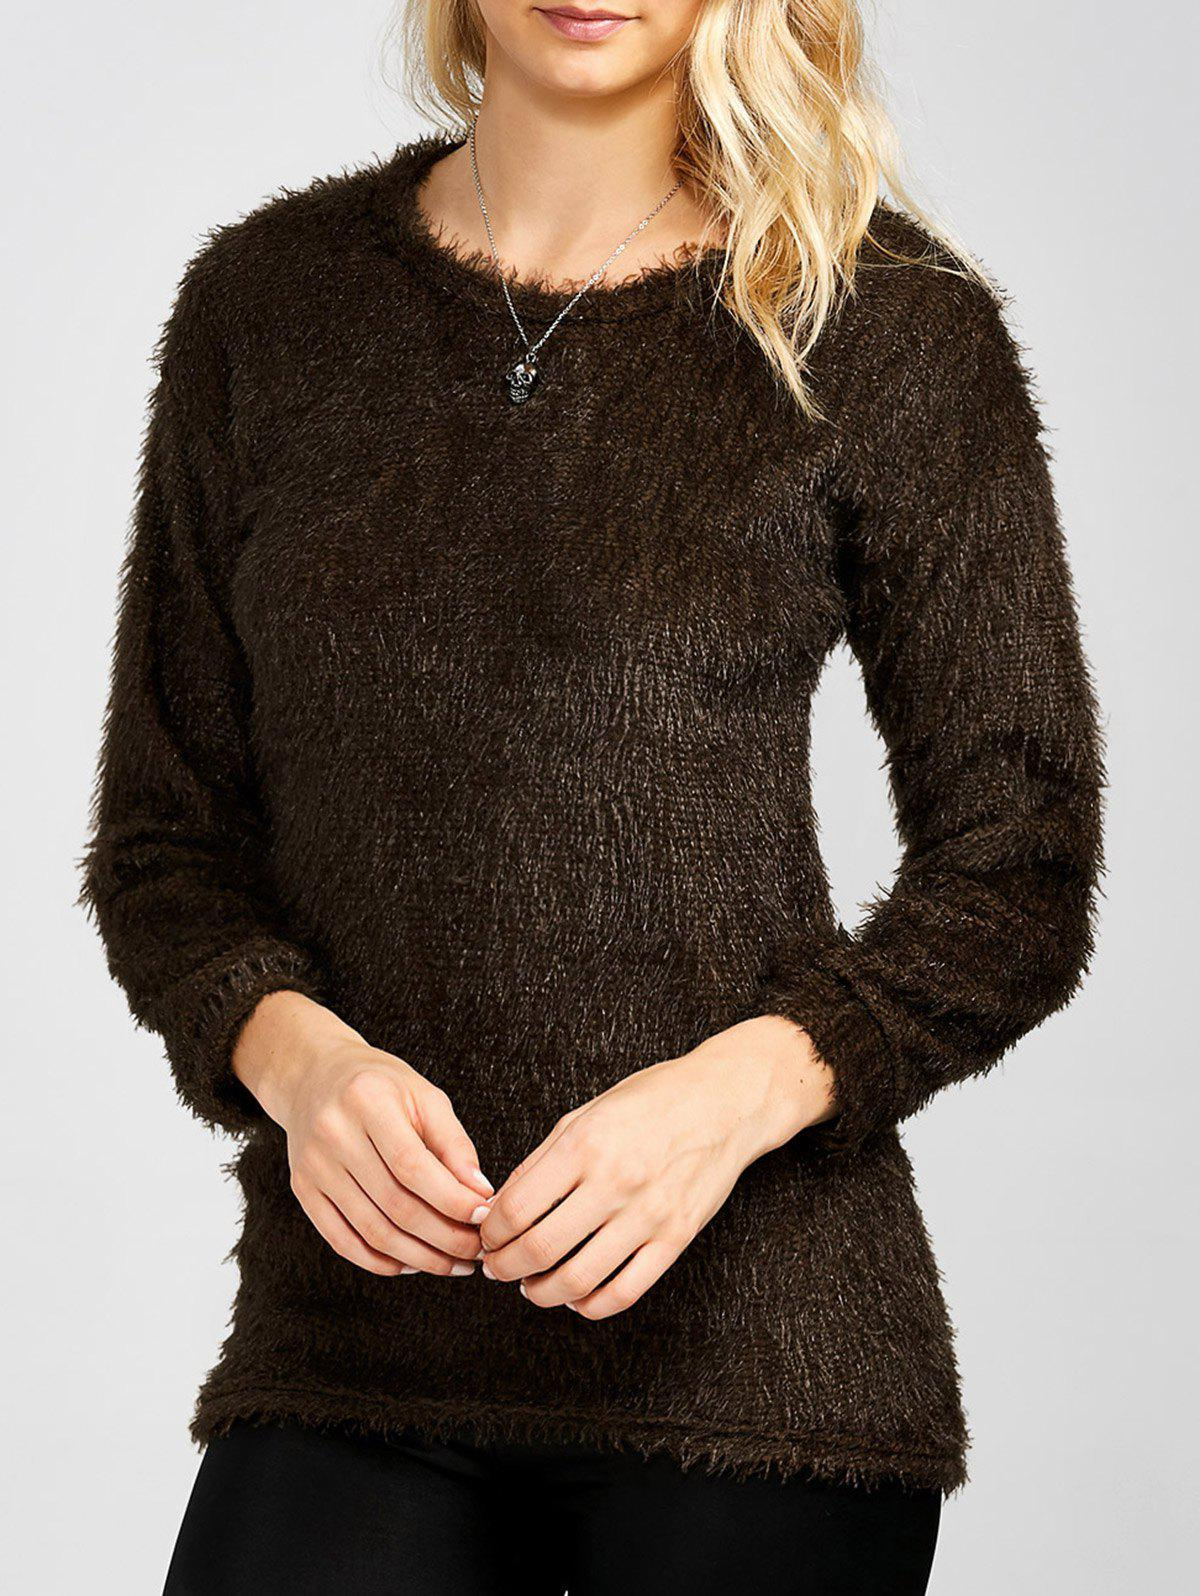 Latest Drop Shoulder Long Fuzzy Sweater